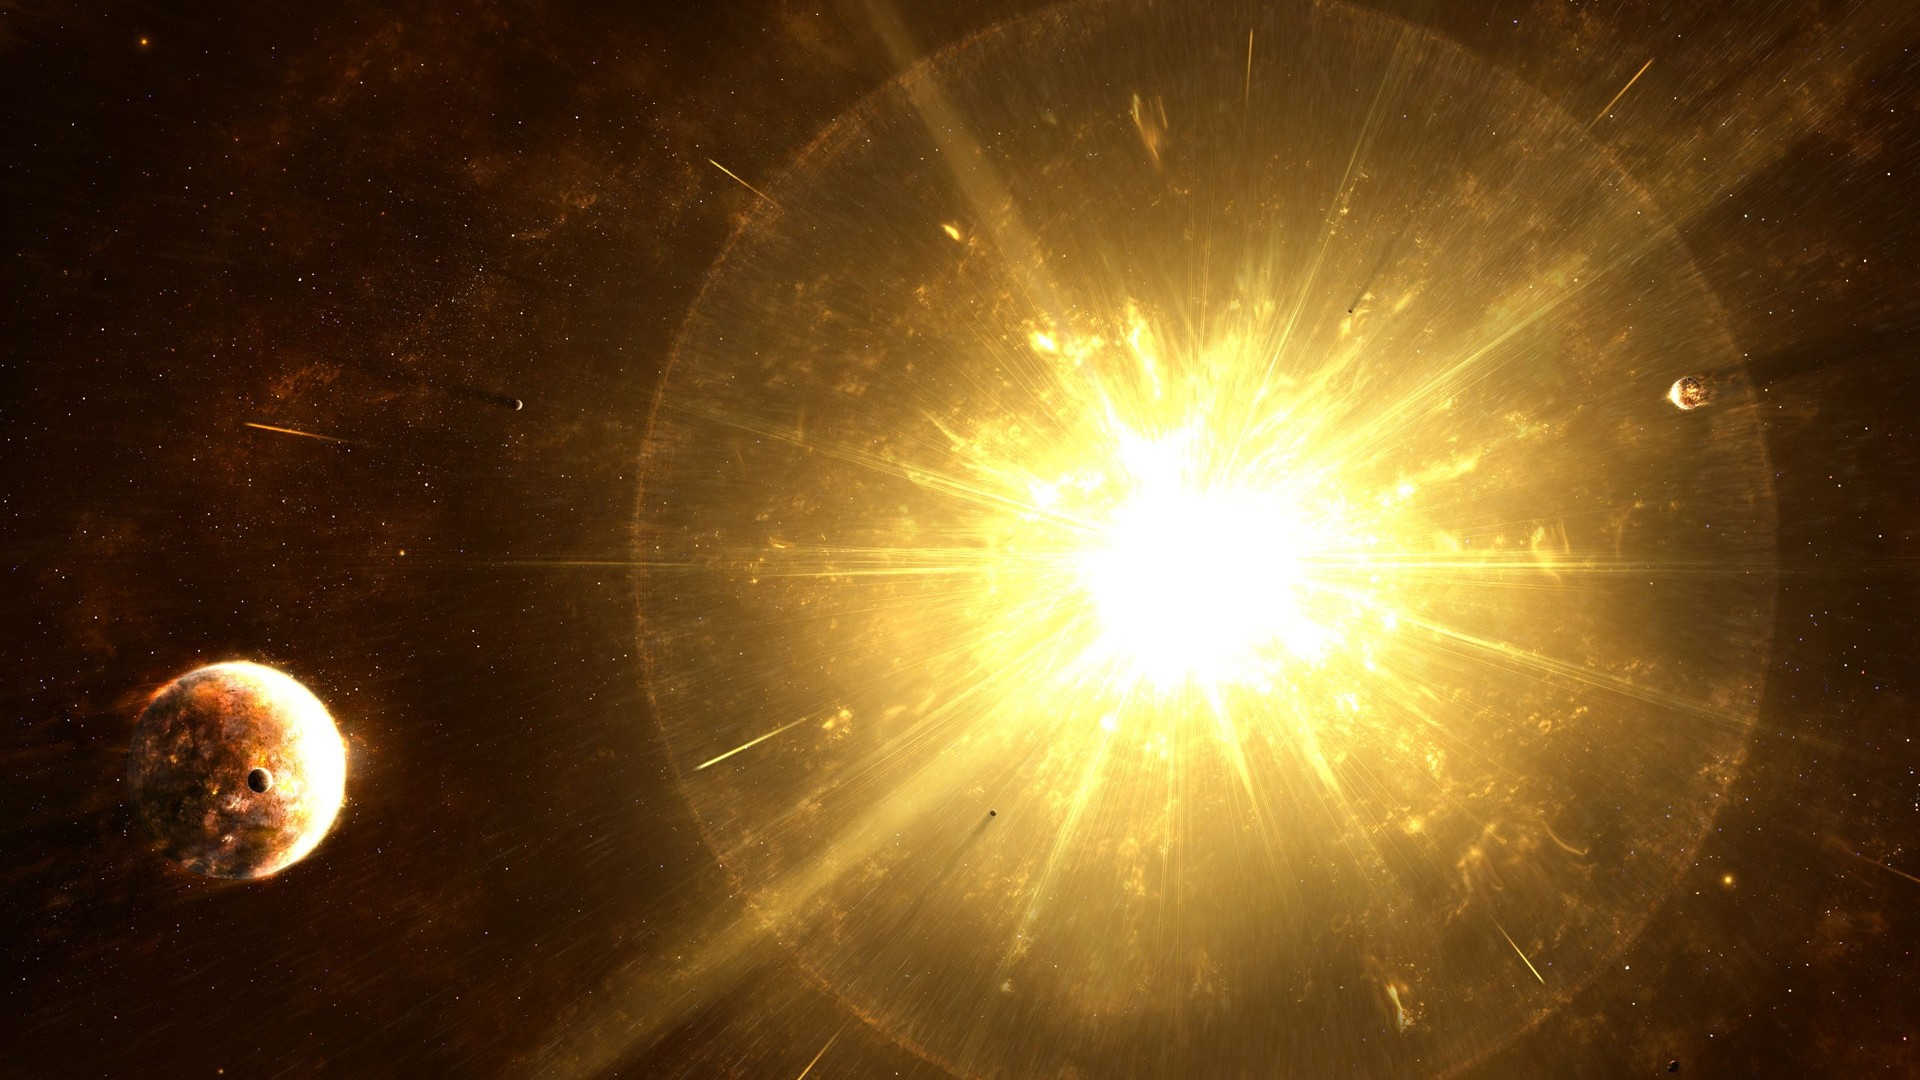 hd nasa star explosion - photo #17